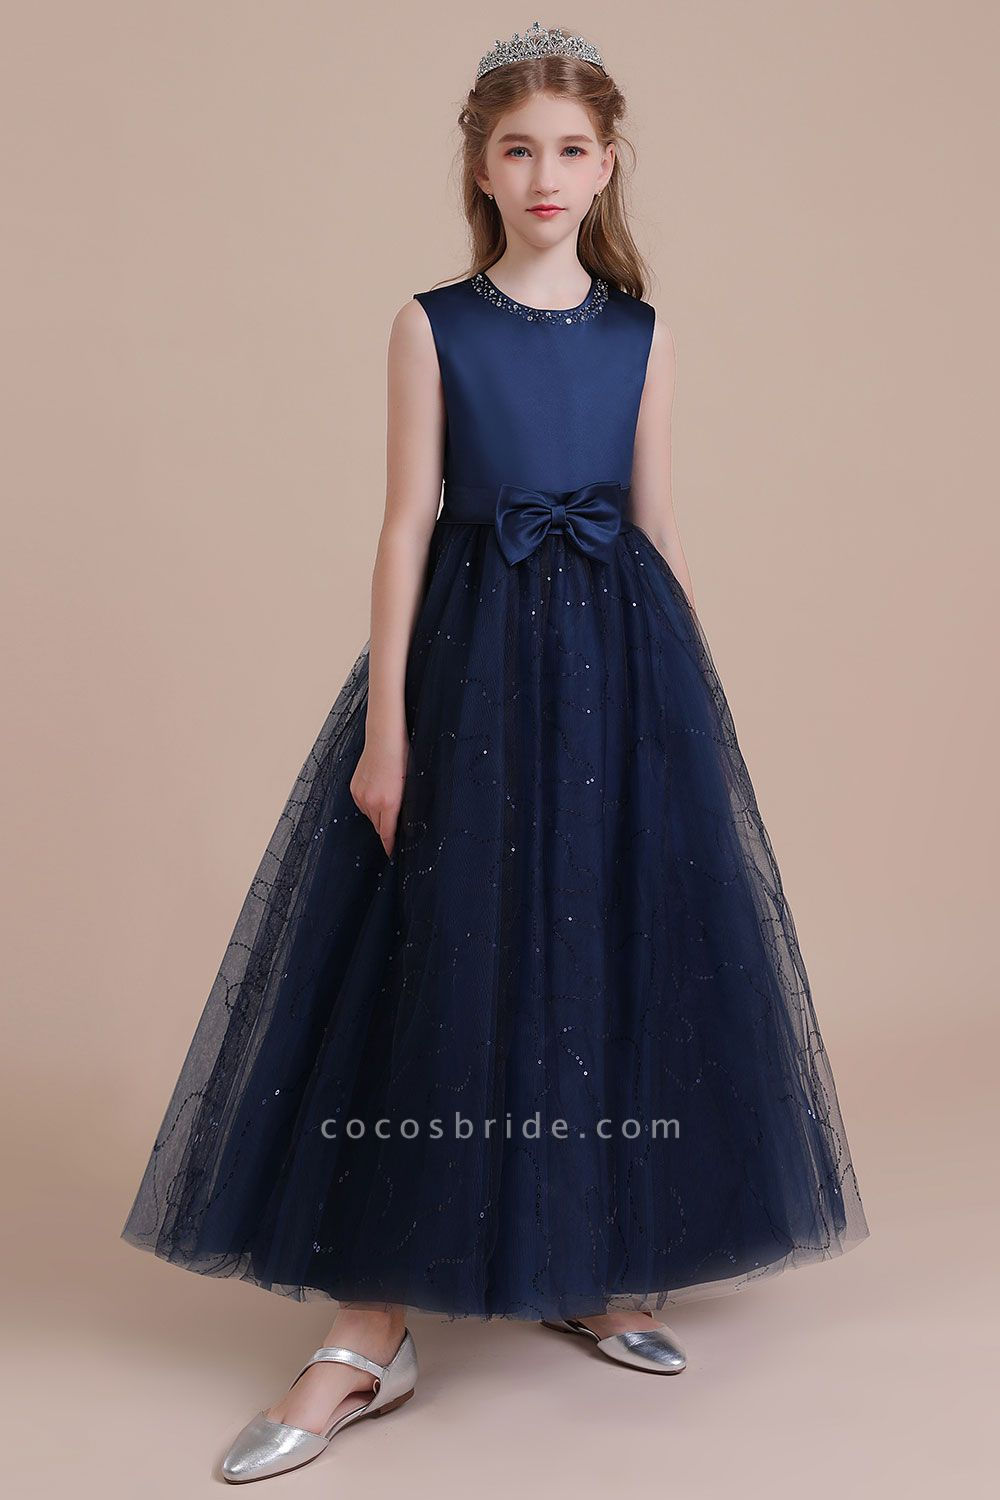 Chic Bow Tulle A-line Flower Girl Dress